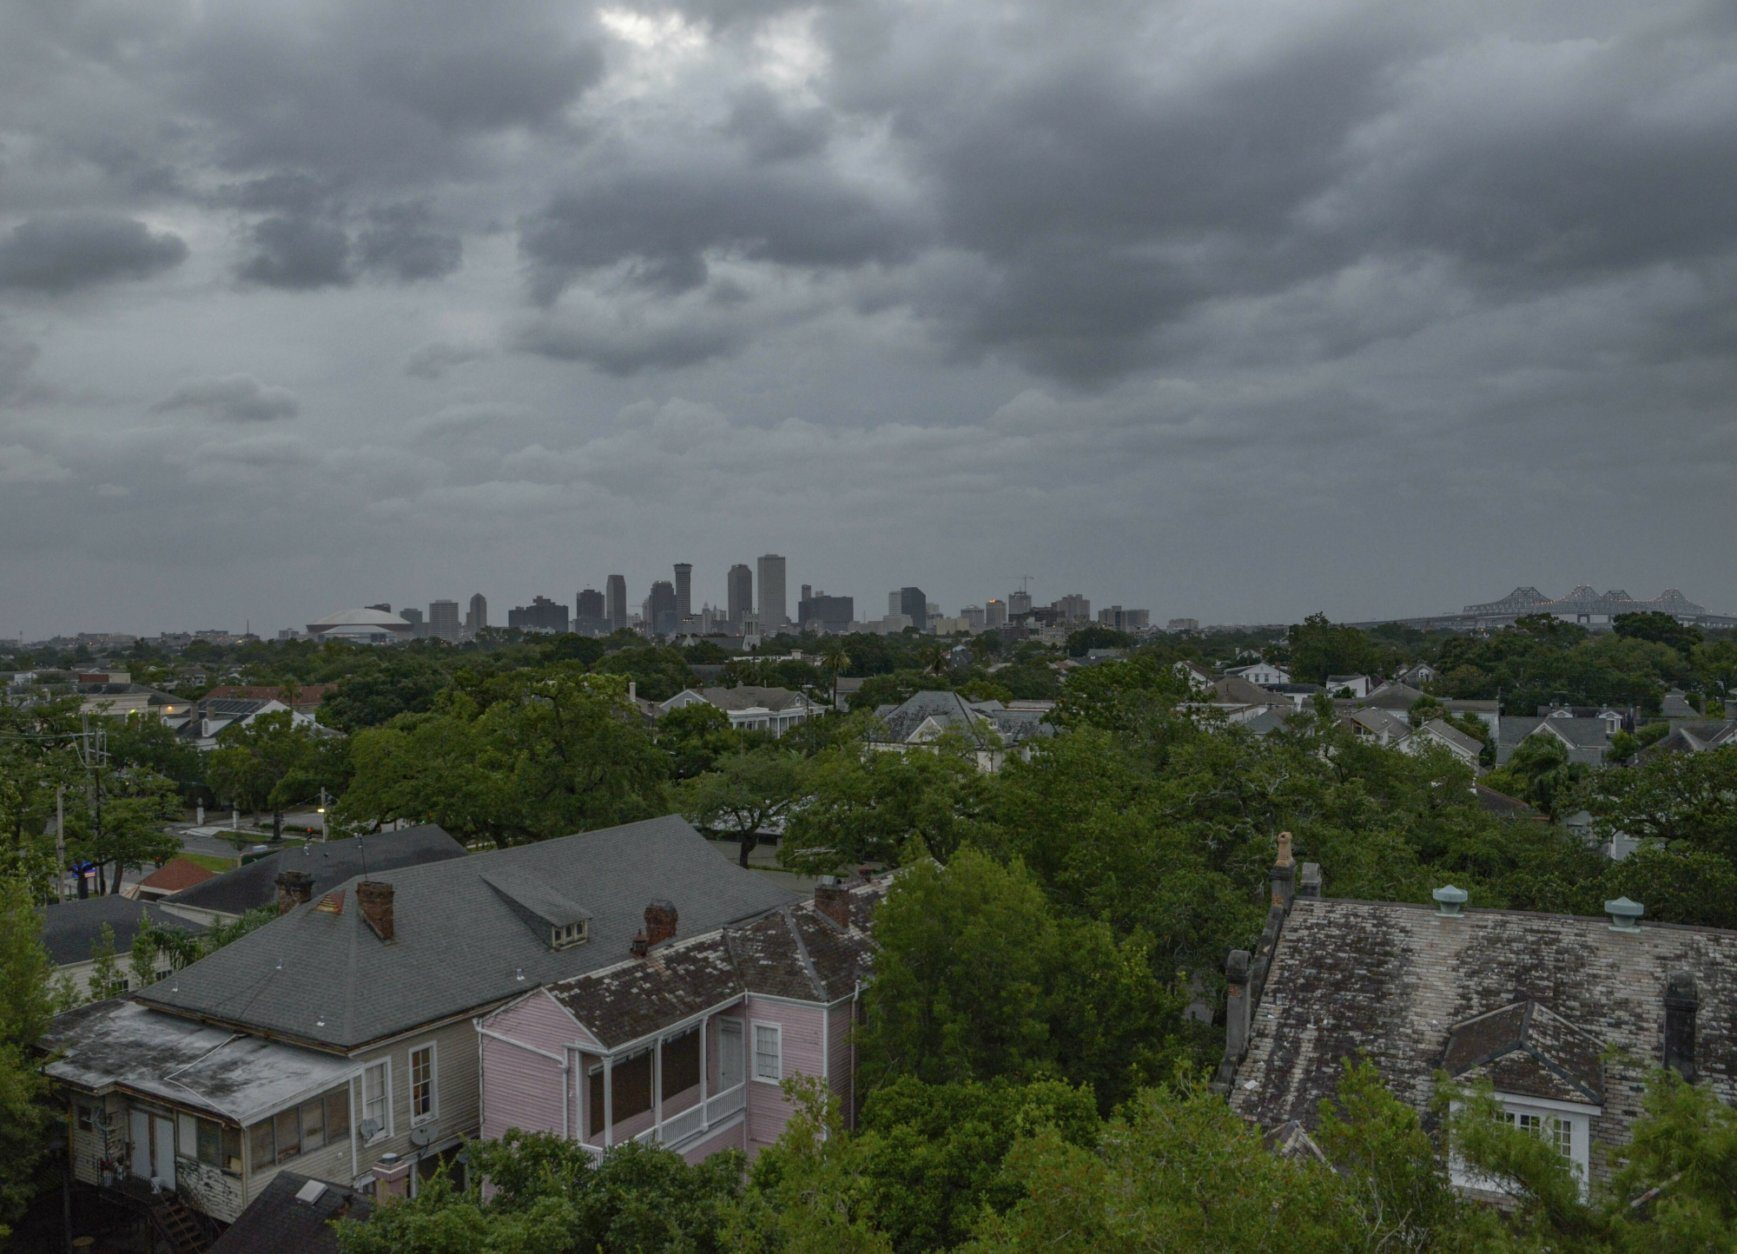 Clouds cover the sky over New Orleans ahead of Tropical Storm Barry making landfall in the Gulf of Mexico on Saturday, July 13, 2019. (AP Photo/Matthew Hinton)